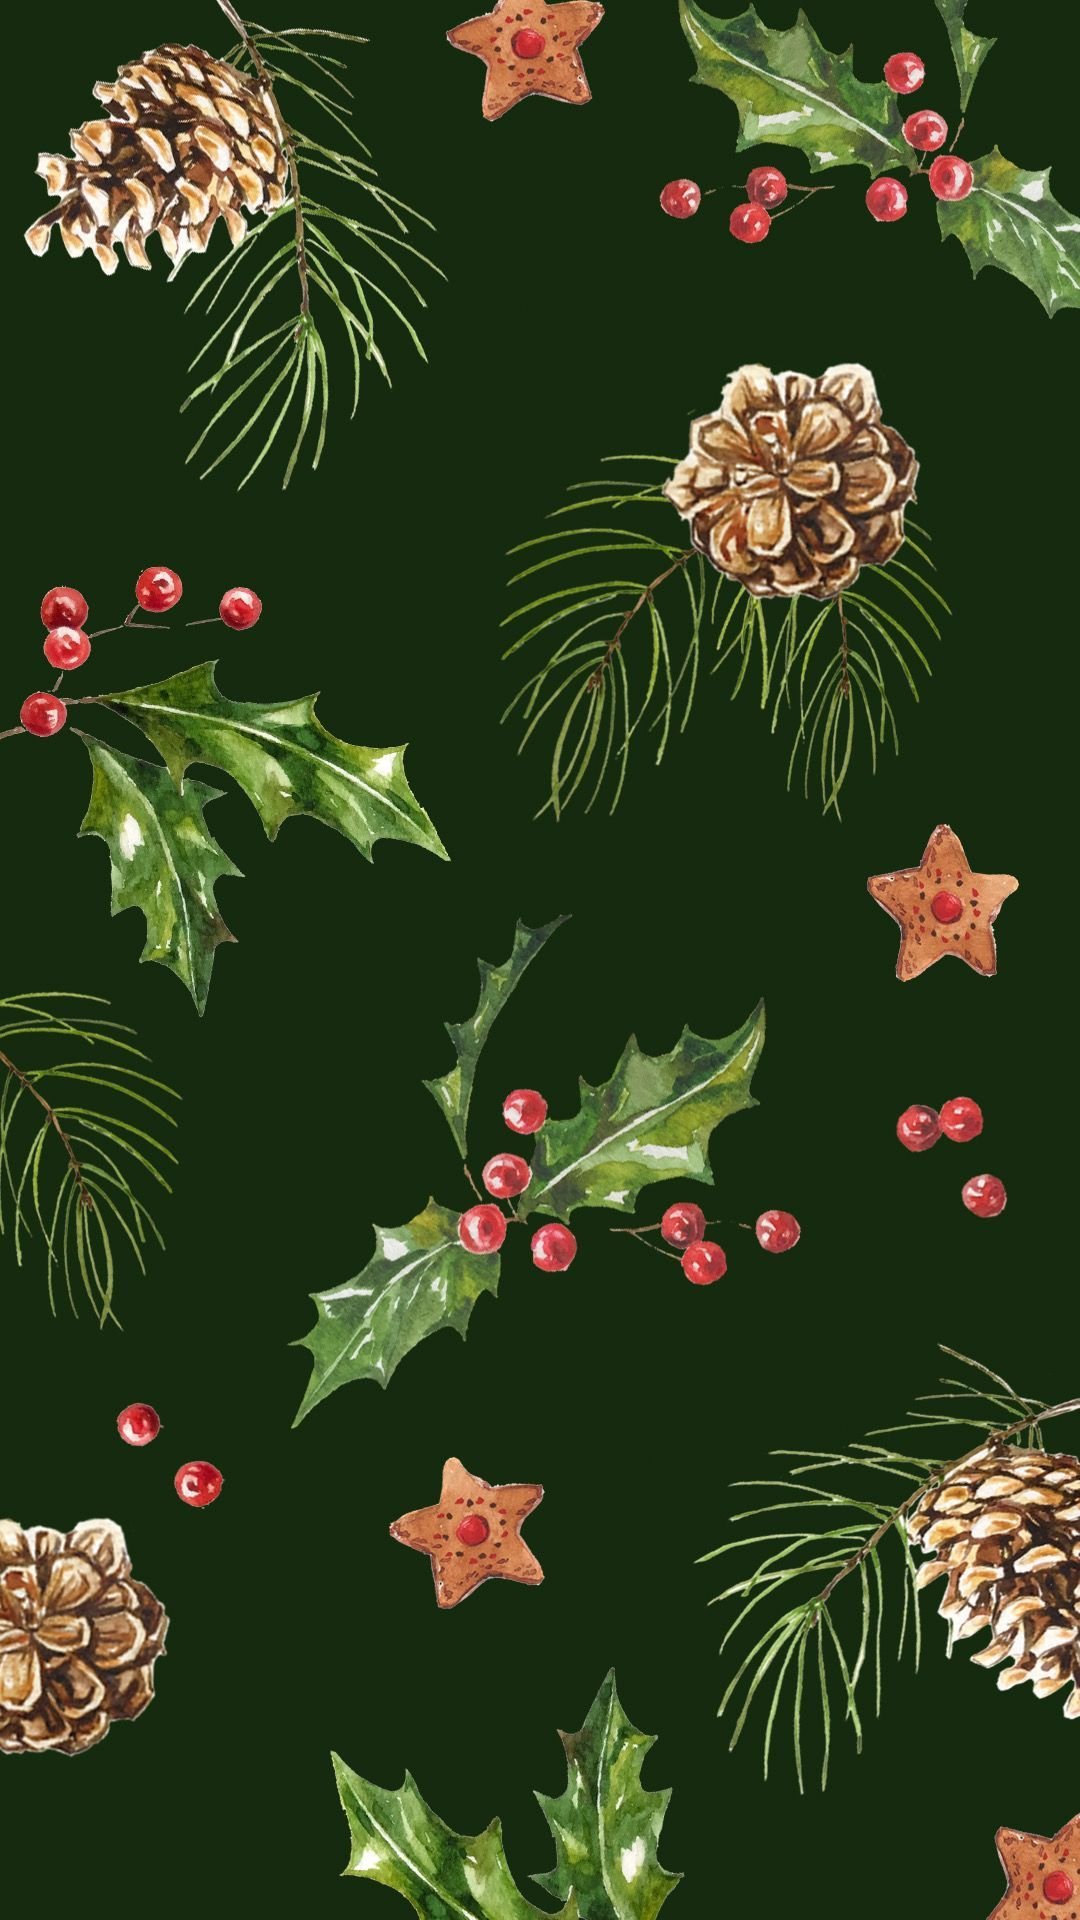 1080x1920 Pin by Kathy on Christmas Wallpapers in 2019   Winter ...